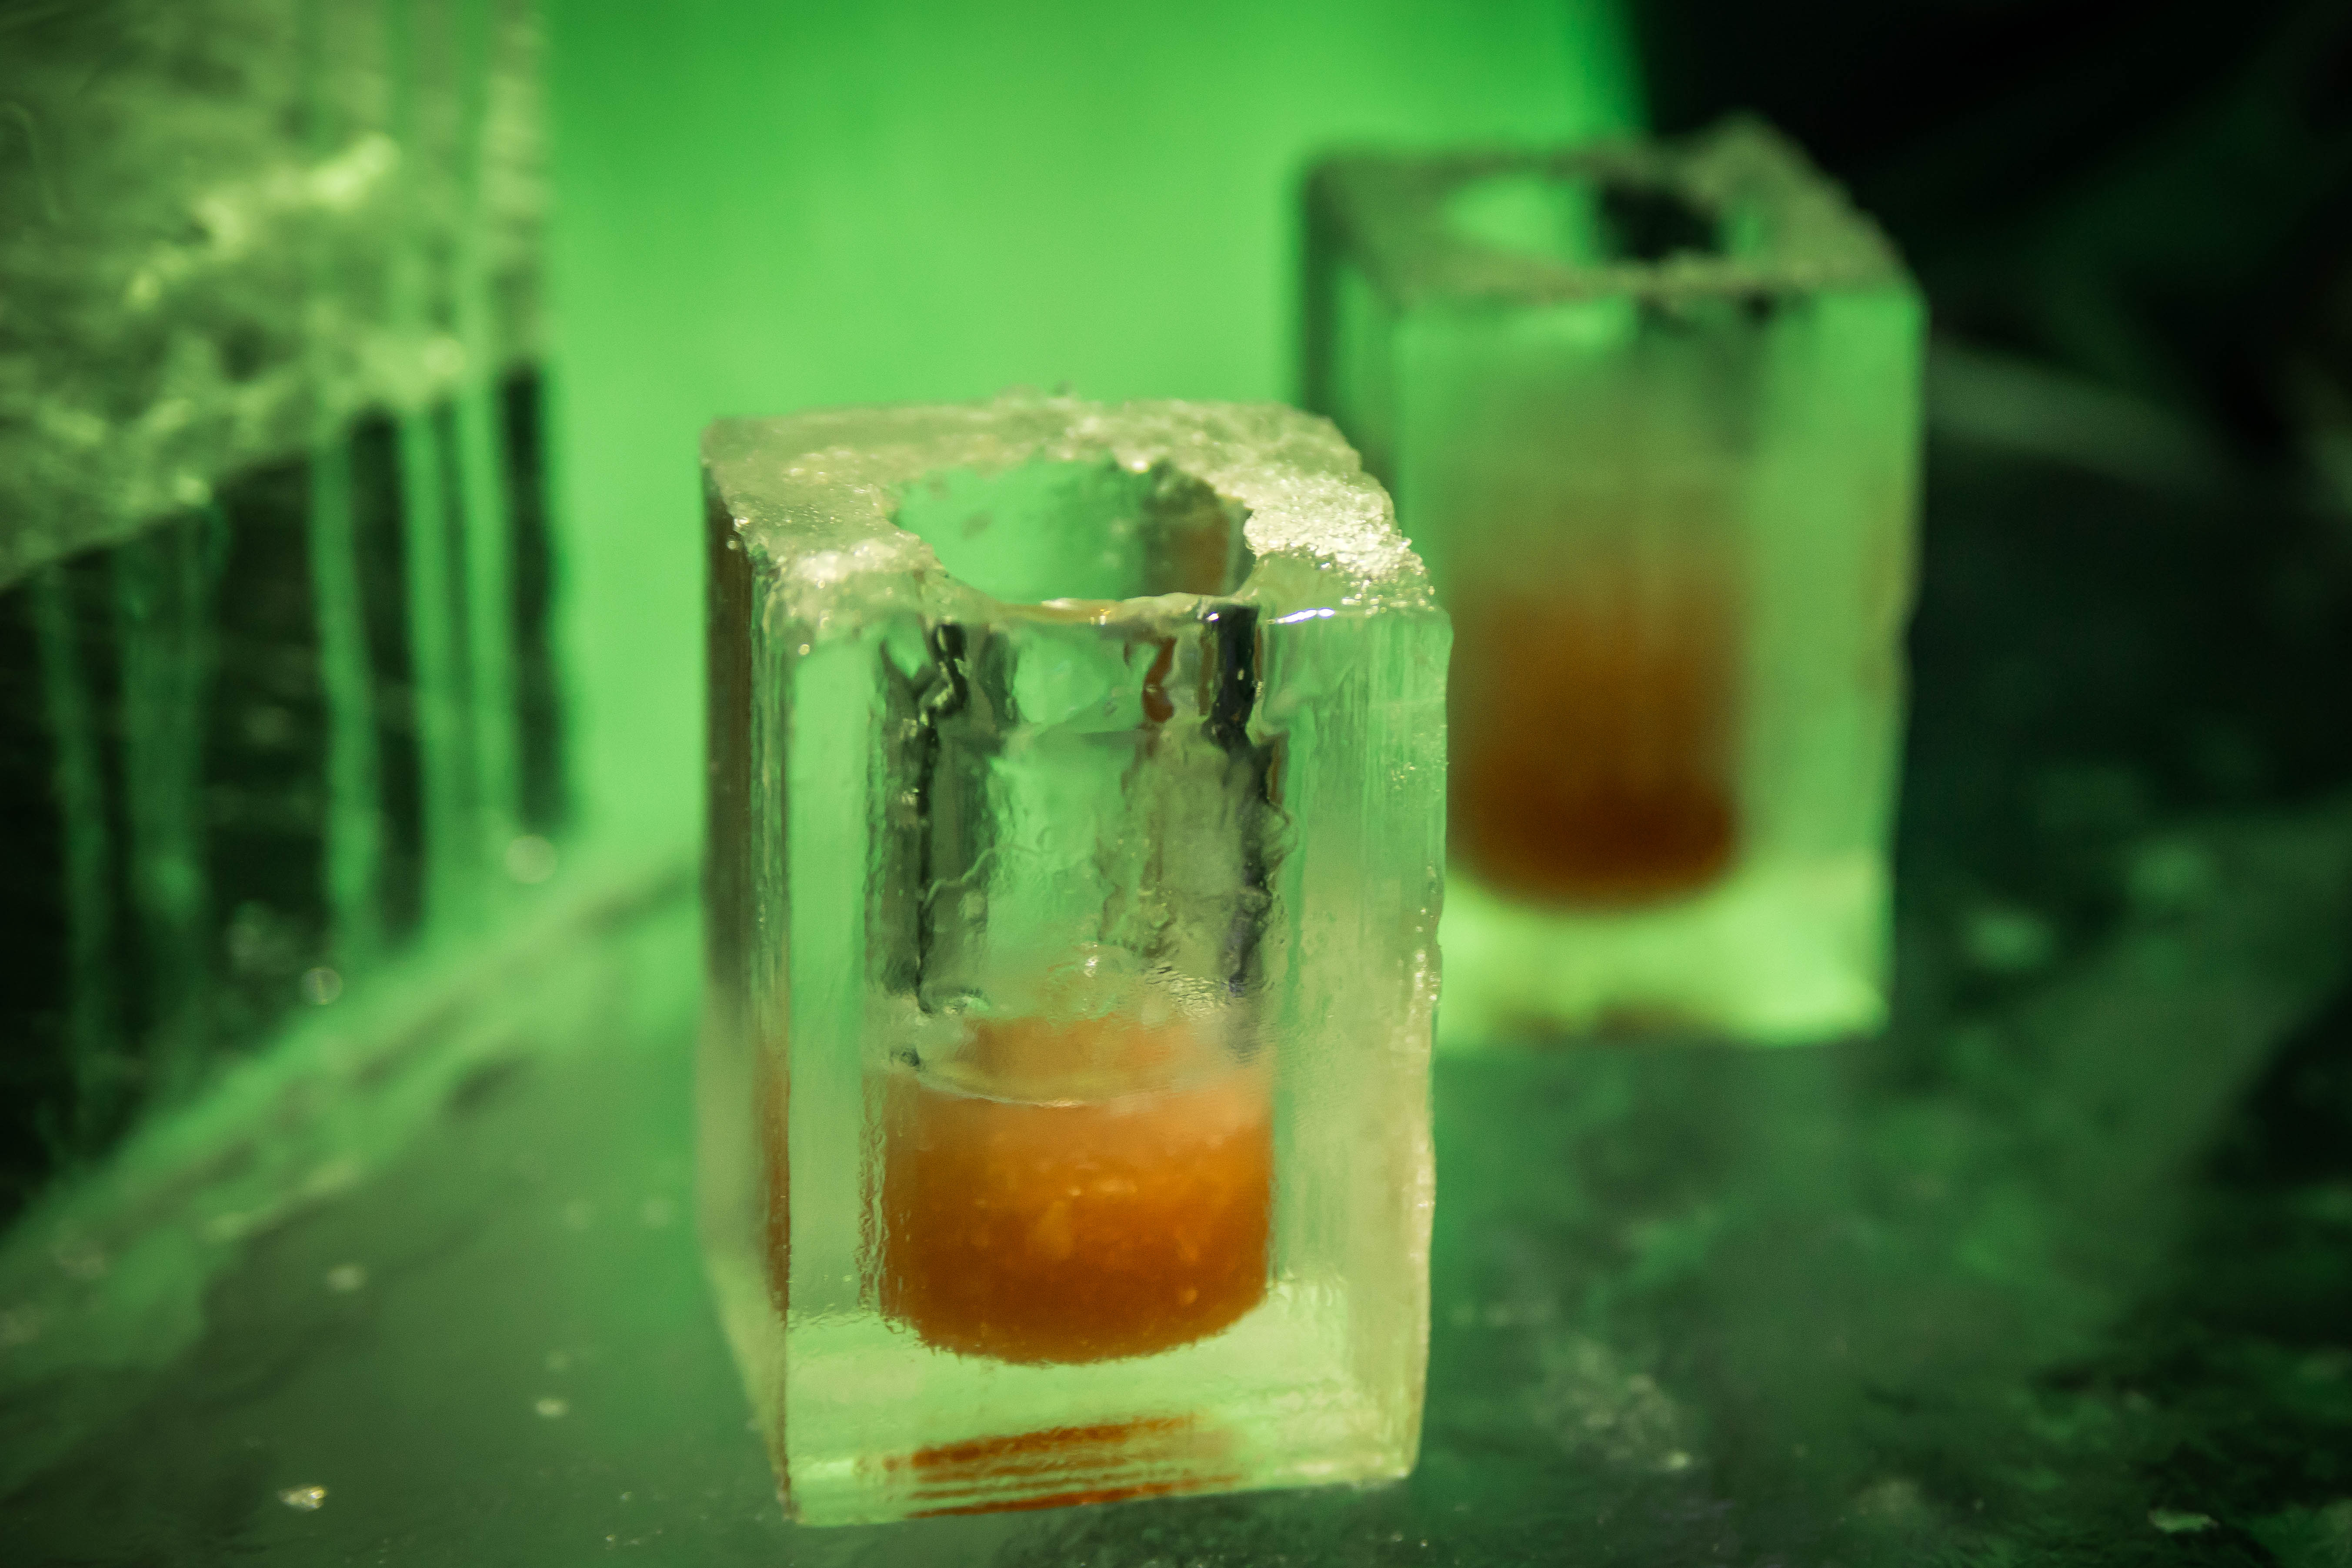 Ice glasses at the ice bar